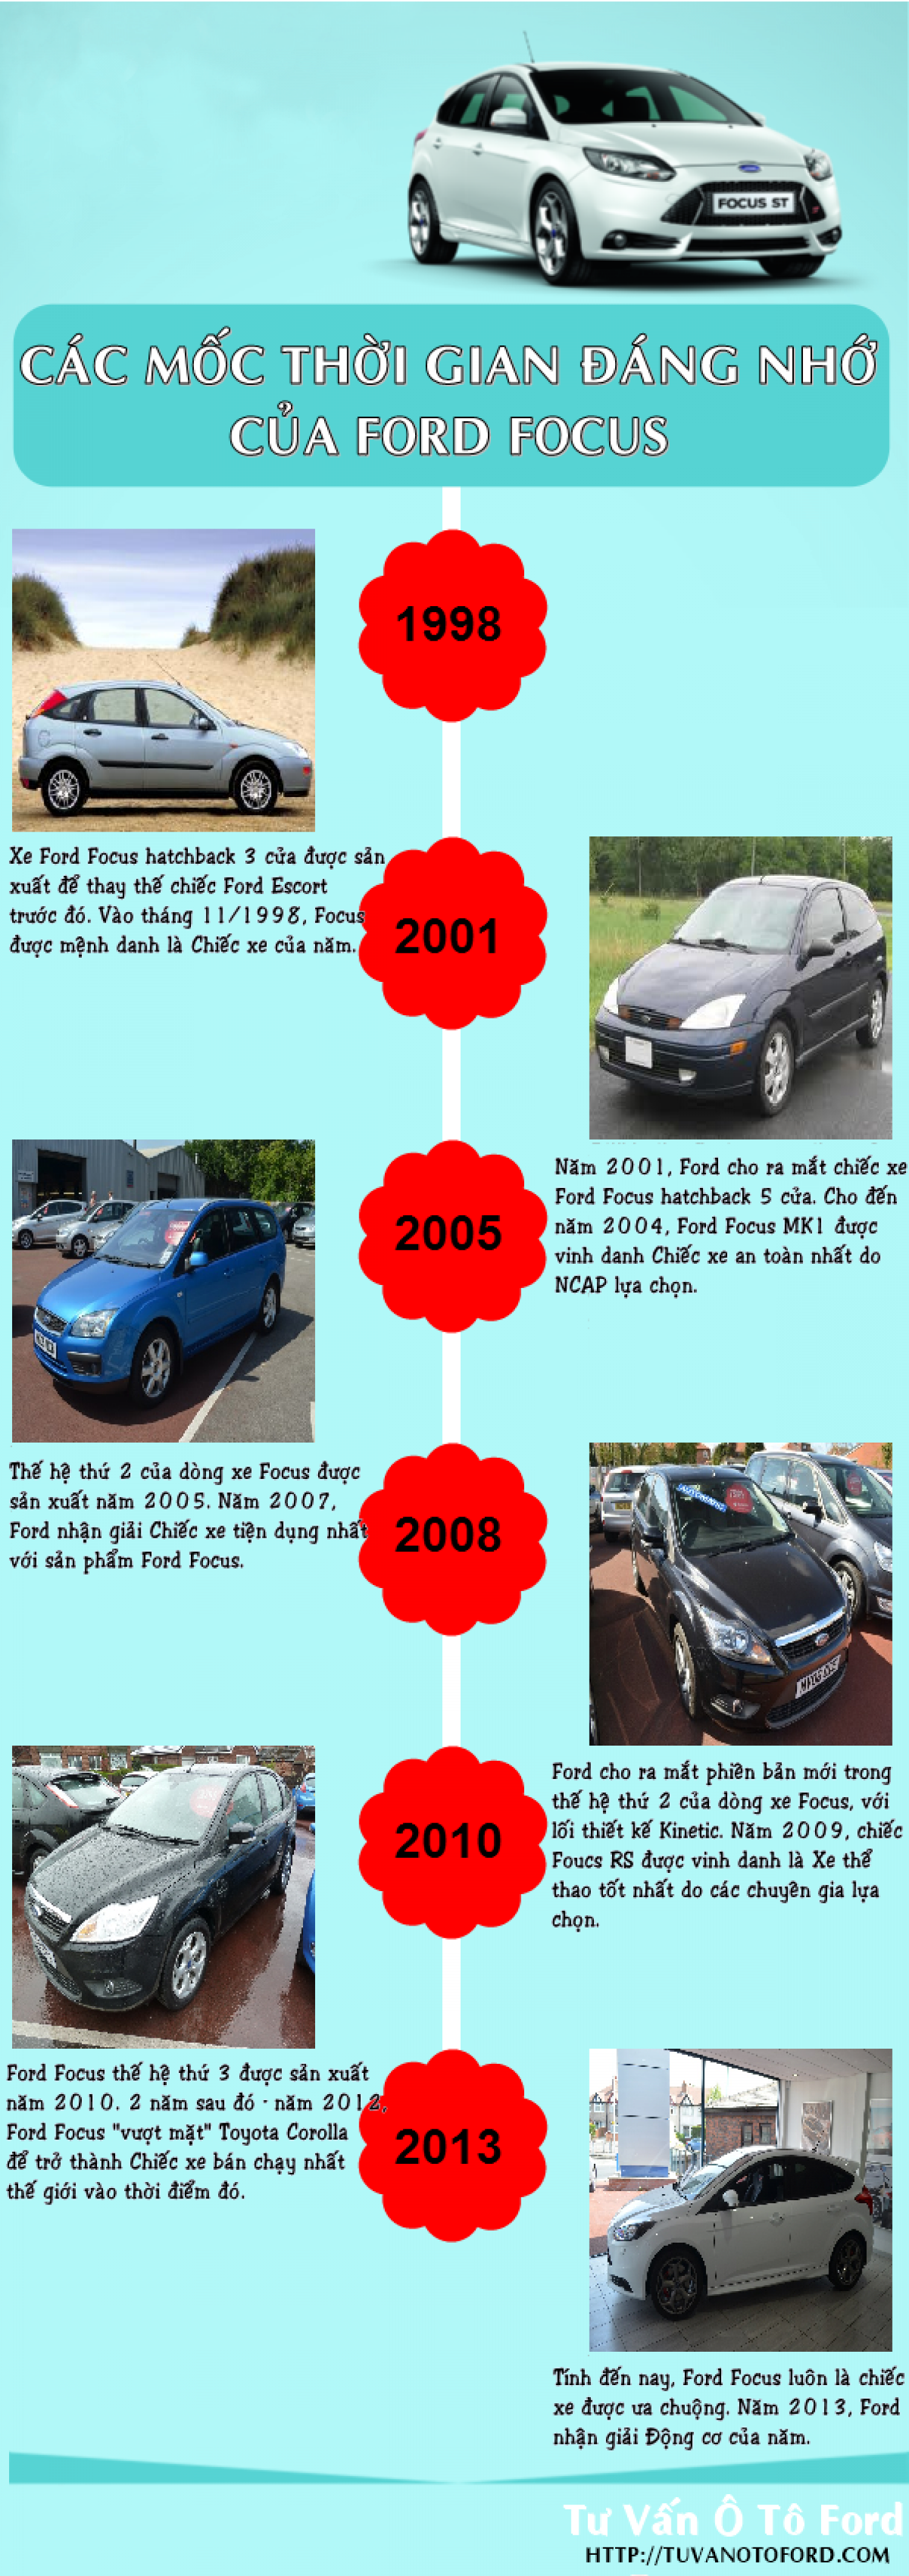 Lịch sử dòng xe Ford Focus Infographic